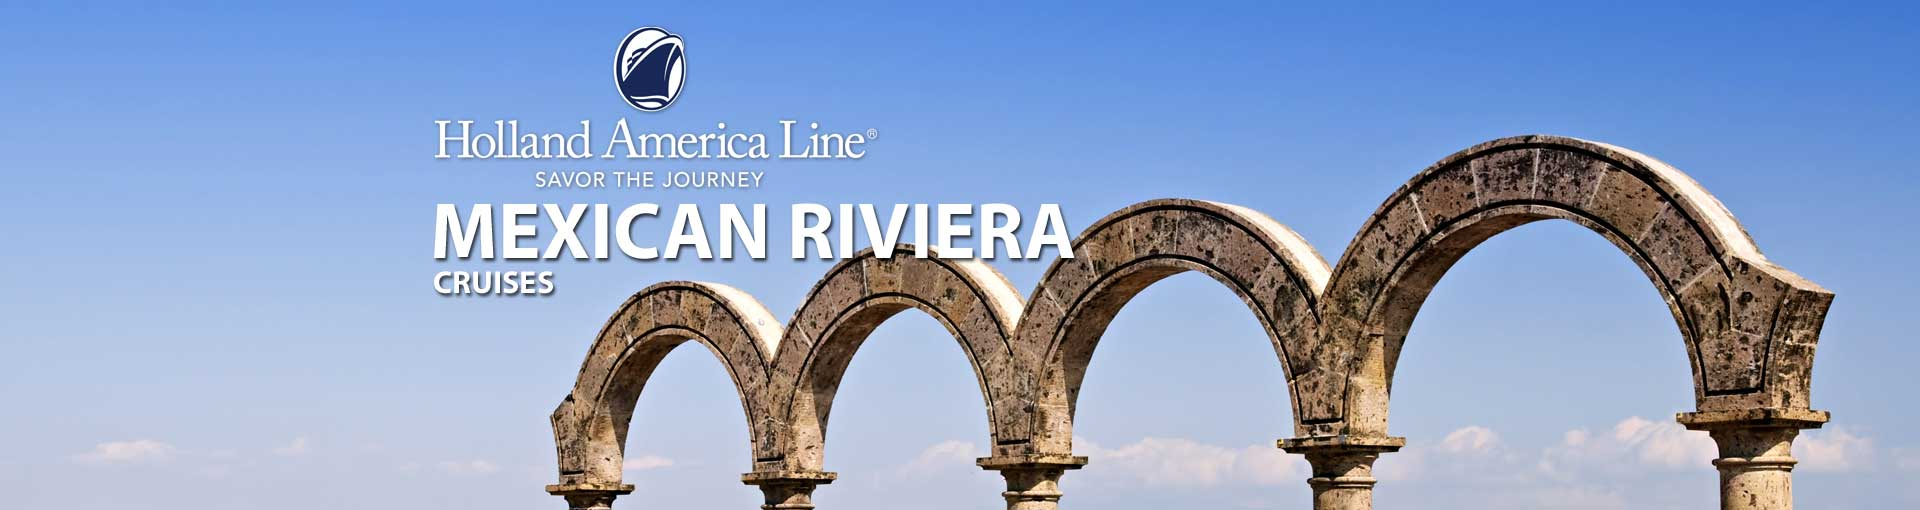 Holland America Mexican Riviera Cruises